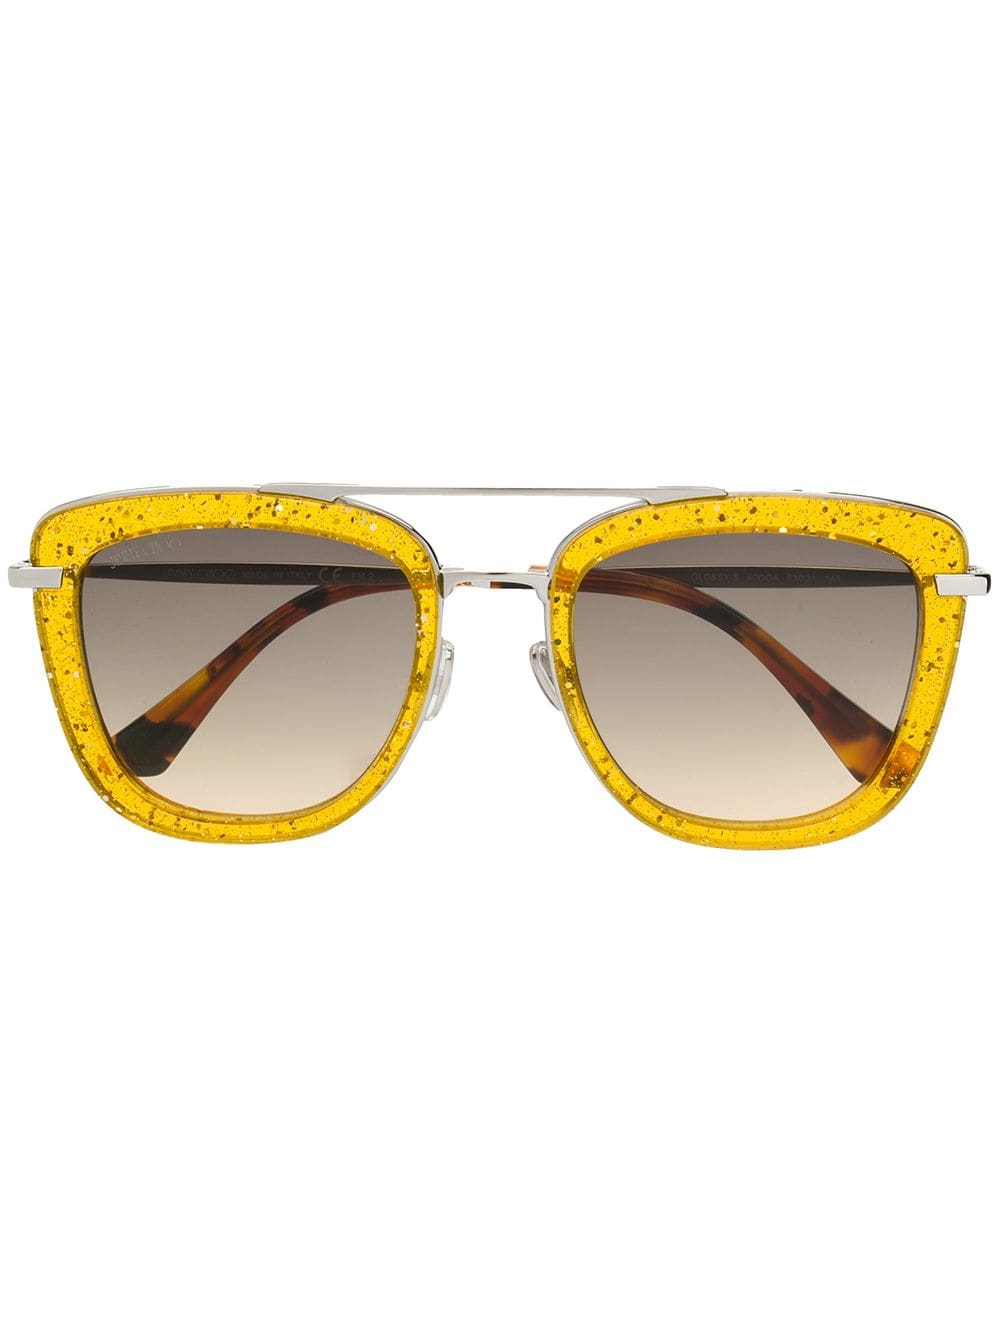 898a512d6fd3 jimmy-choo-eyewear-glossy-53mm-square-sunglasses -yellow-farfetch-com-photo.jpg 1548128129